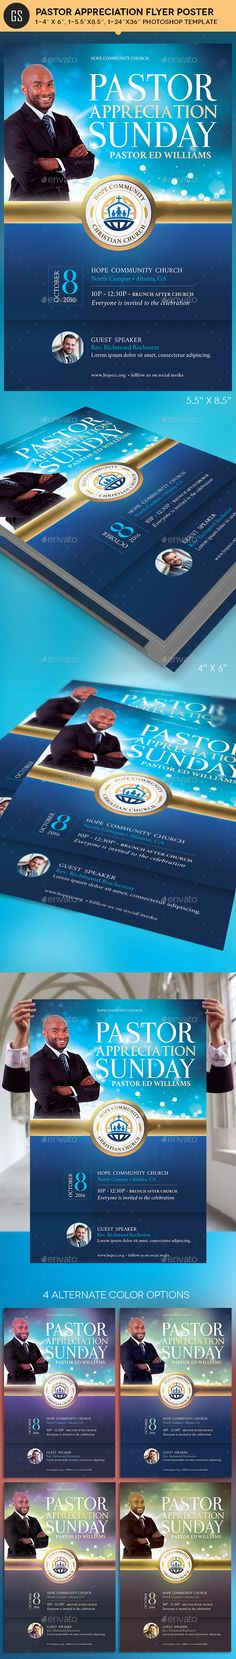 Community Pastor Appreciation Flyer Poster Template — Photoshop PSD #poster #jubilee • Available here → https://graphicriver.net/item/community-pastor-appreciation-flyer-poster-template/17506723?ref=pxcr